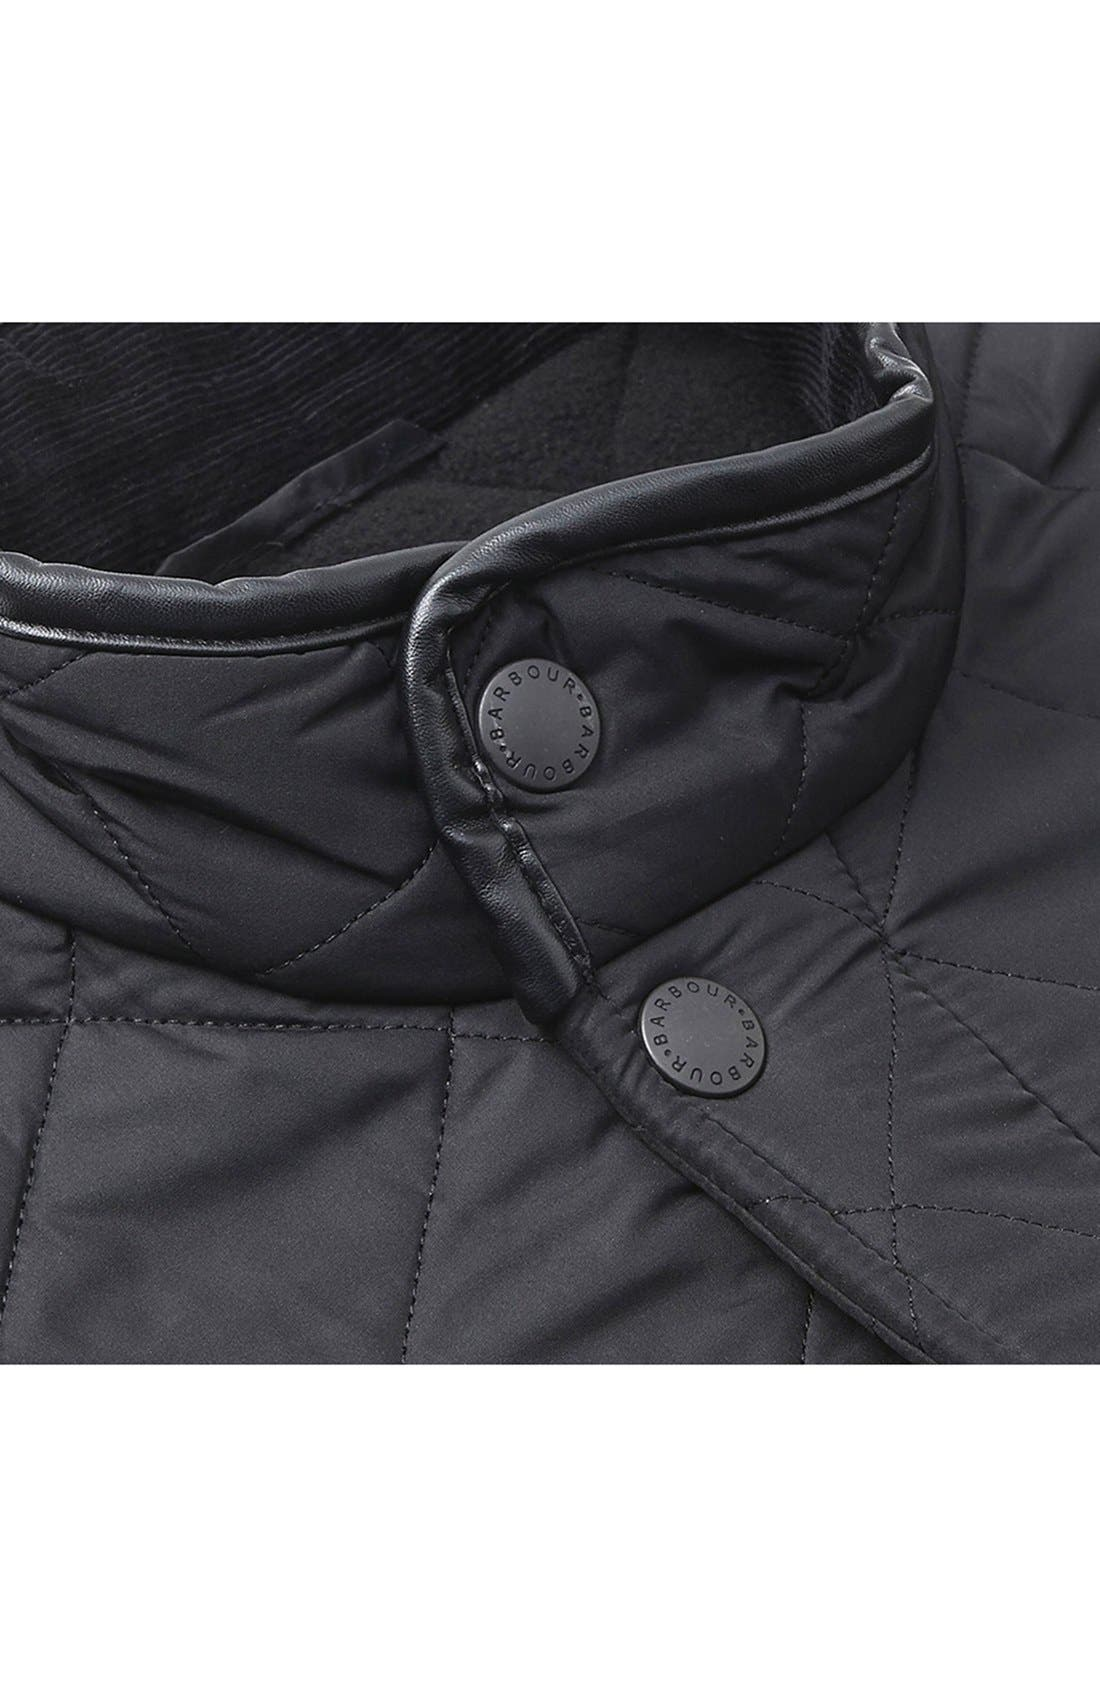 BARBOUR, 'Powell' Regular Fit Quilted Jacket, Alternate thumbnail 4, color, BLACK